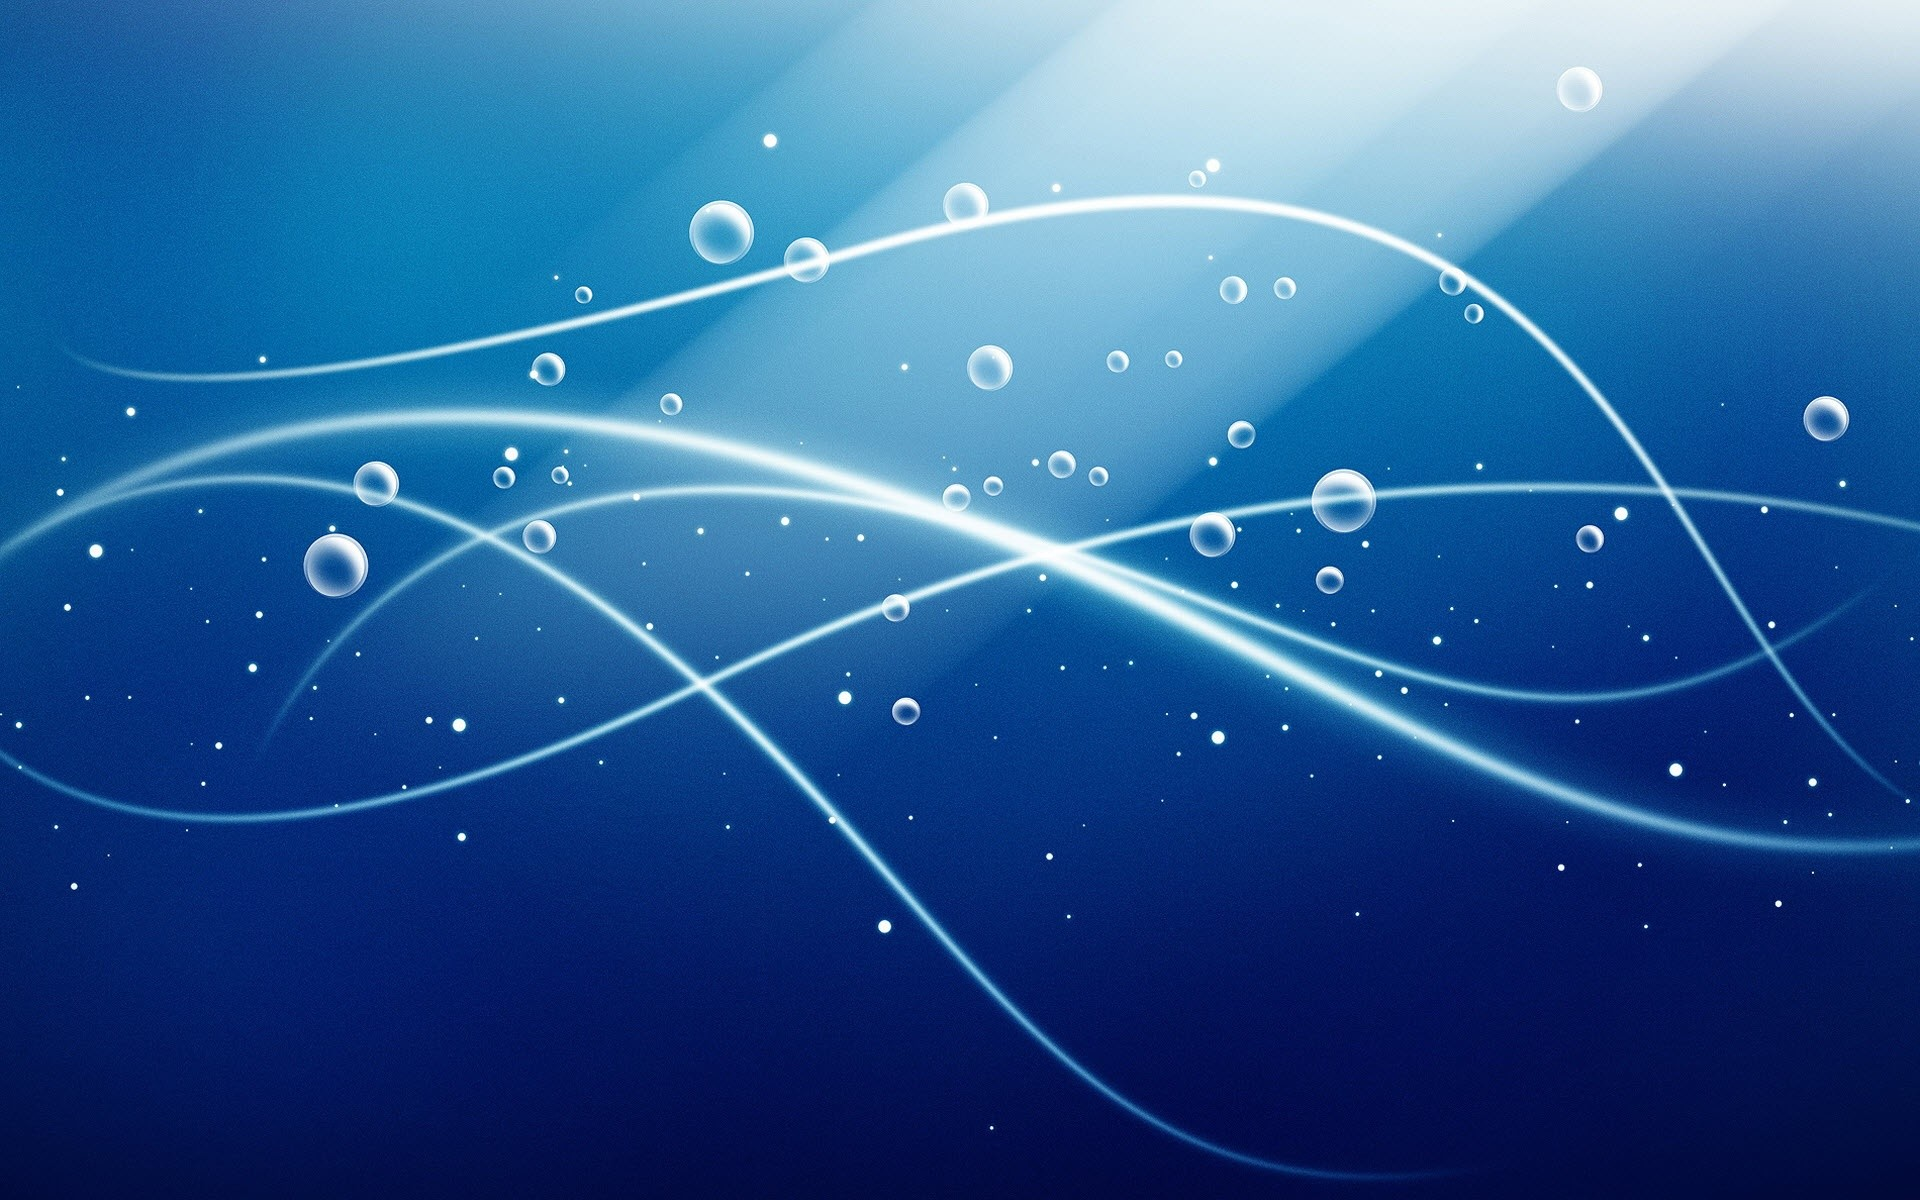 1920x1200 abstract wallpapers hd blue wave. Â«Â«